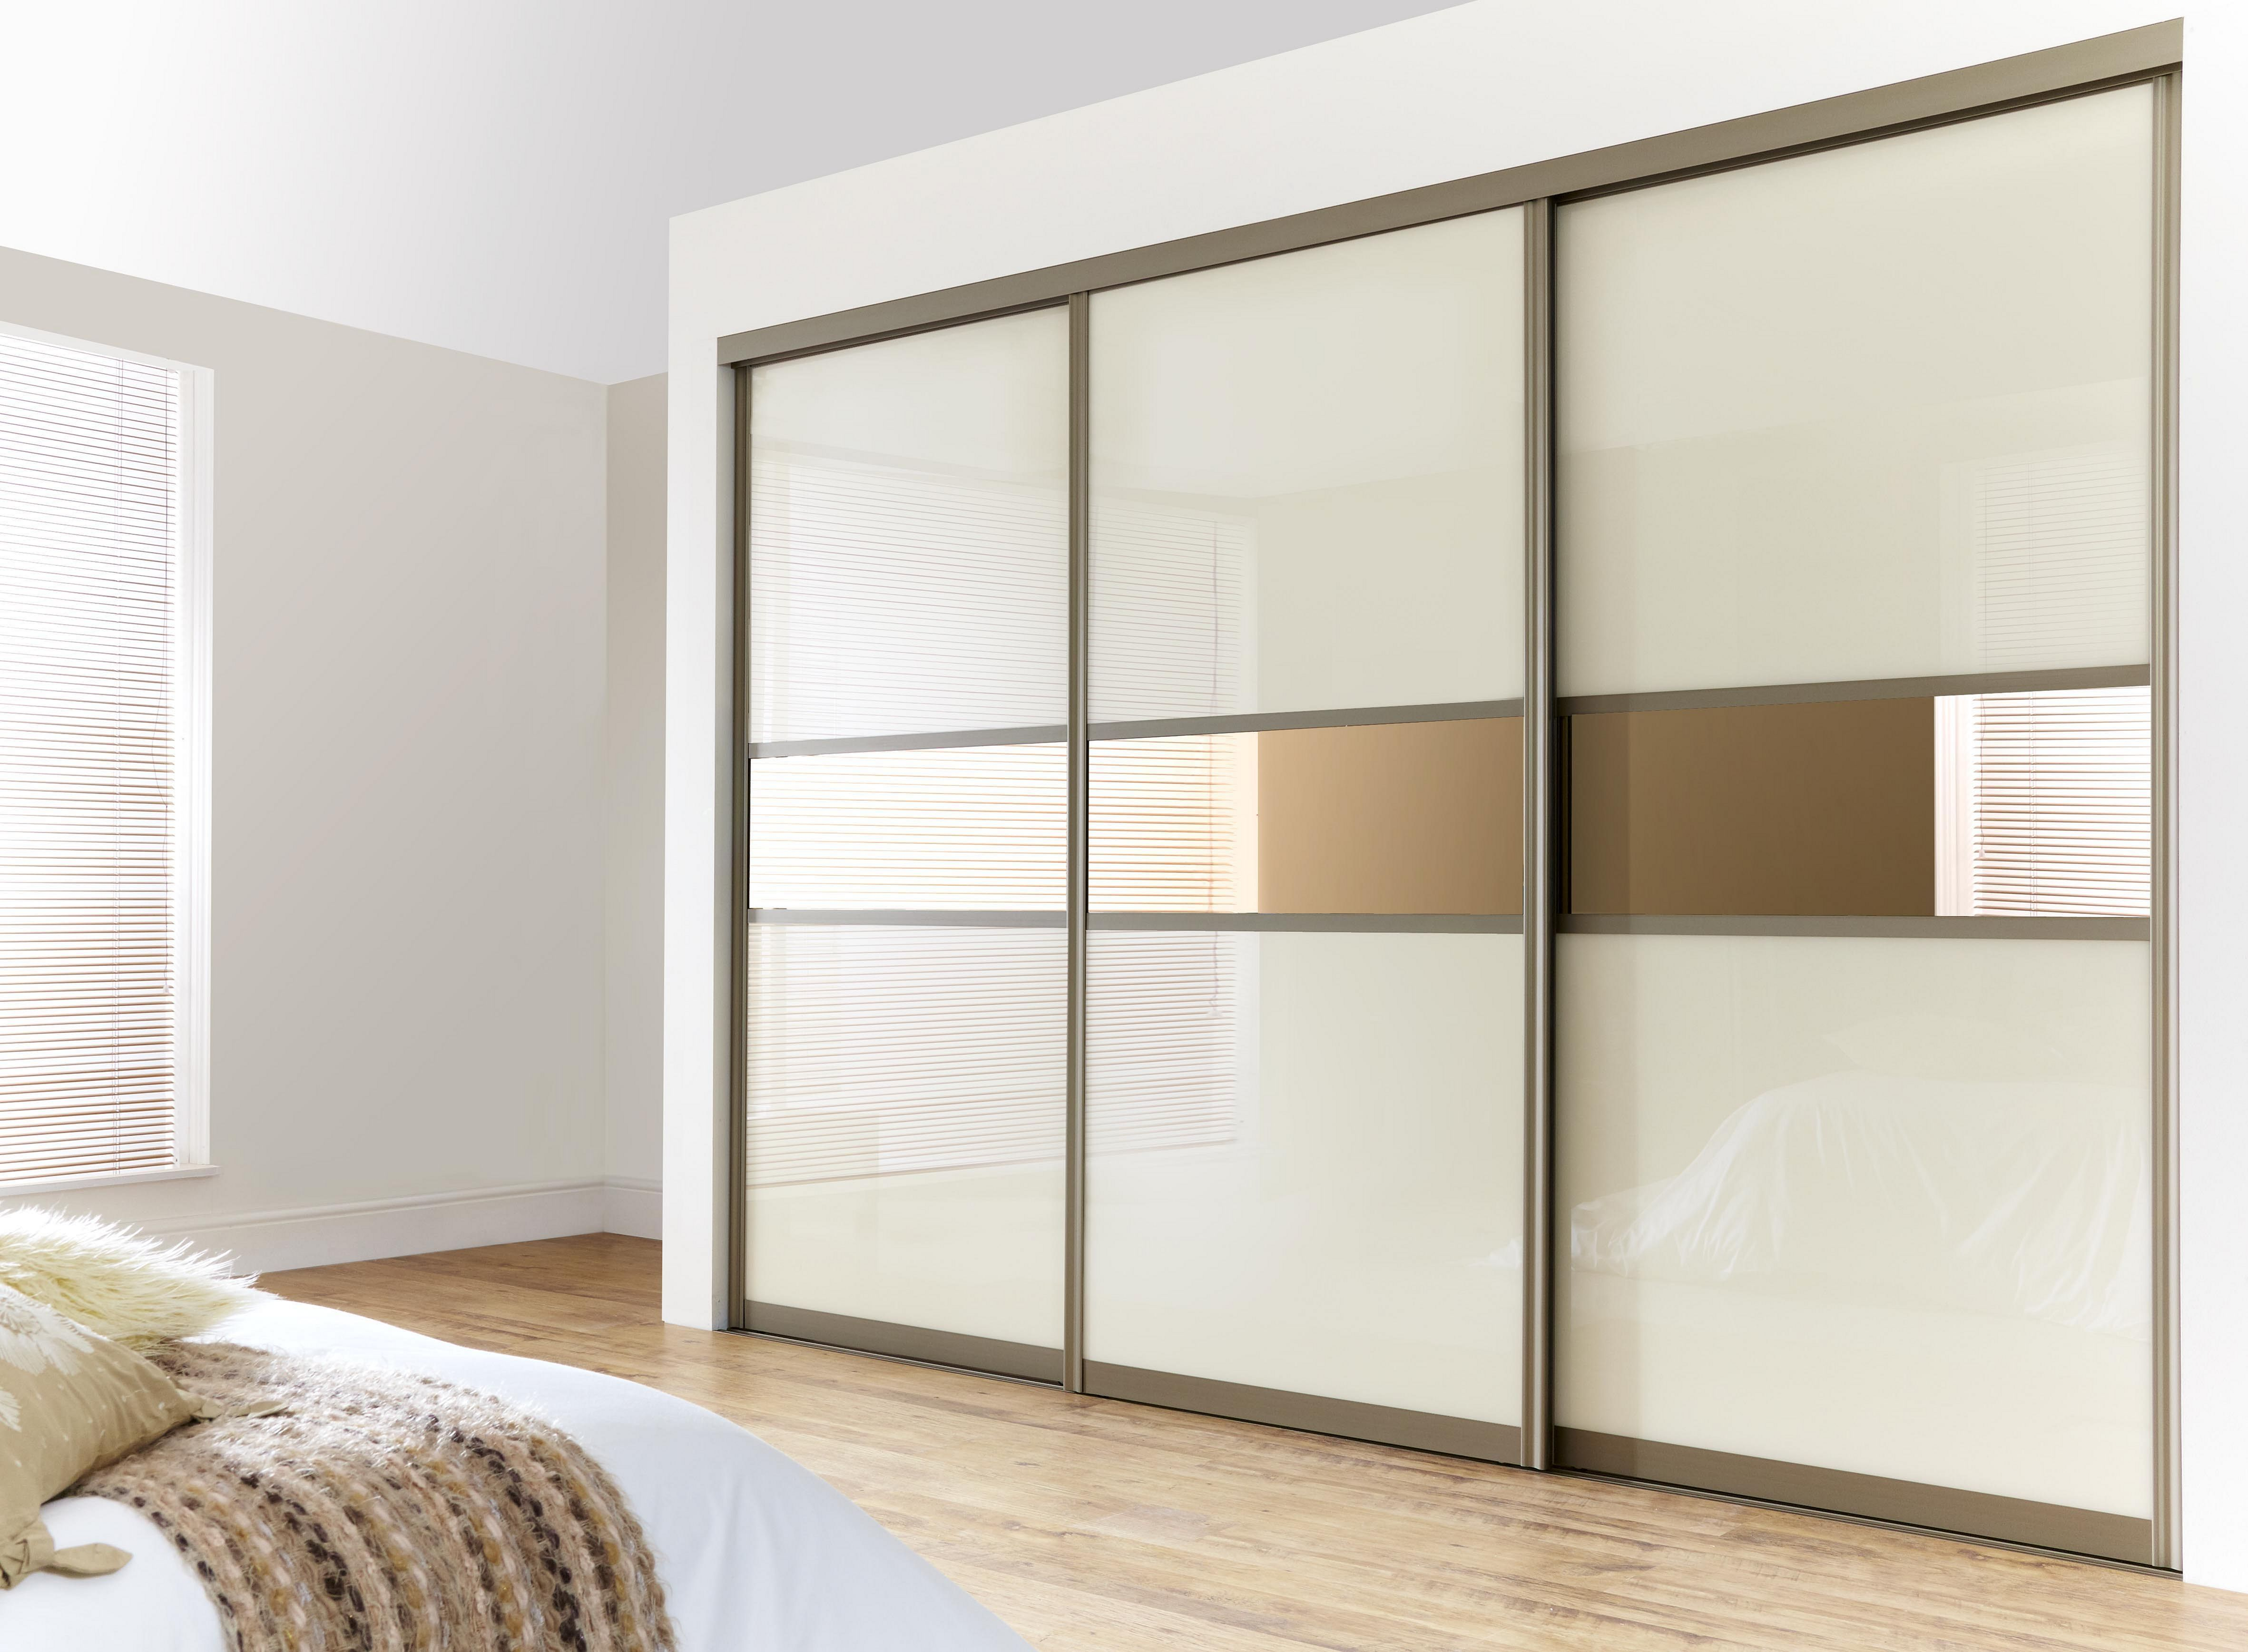 10 Marvelous Sliding Door Cabinet Design Ideas In 2020 Wardrobe Door Designs Sliding Wardrobe Doors Wardrobe Doors